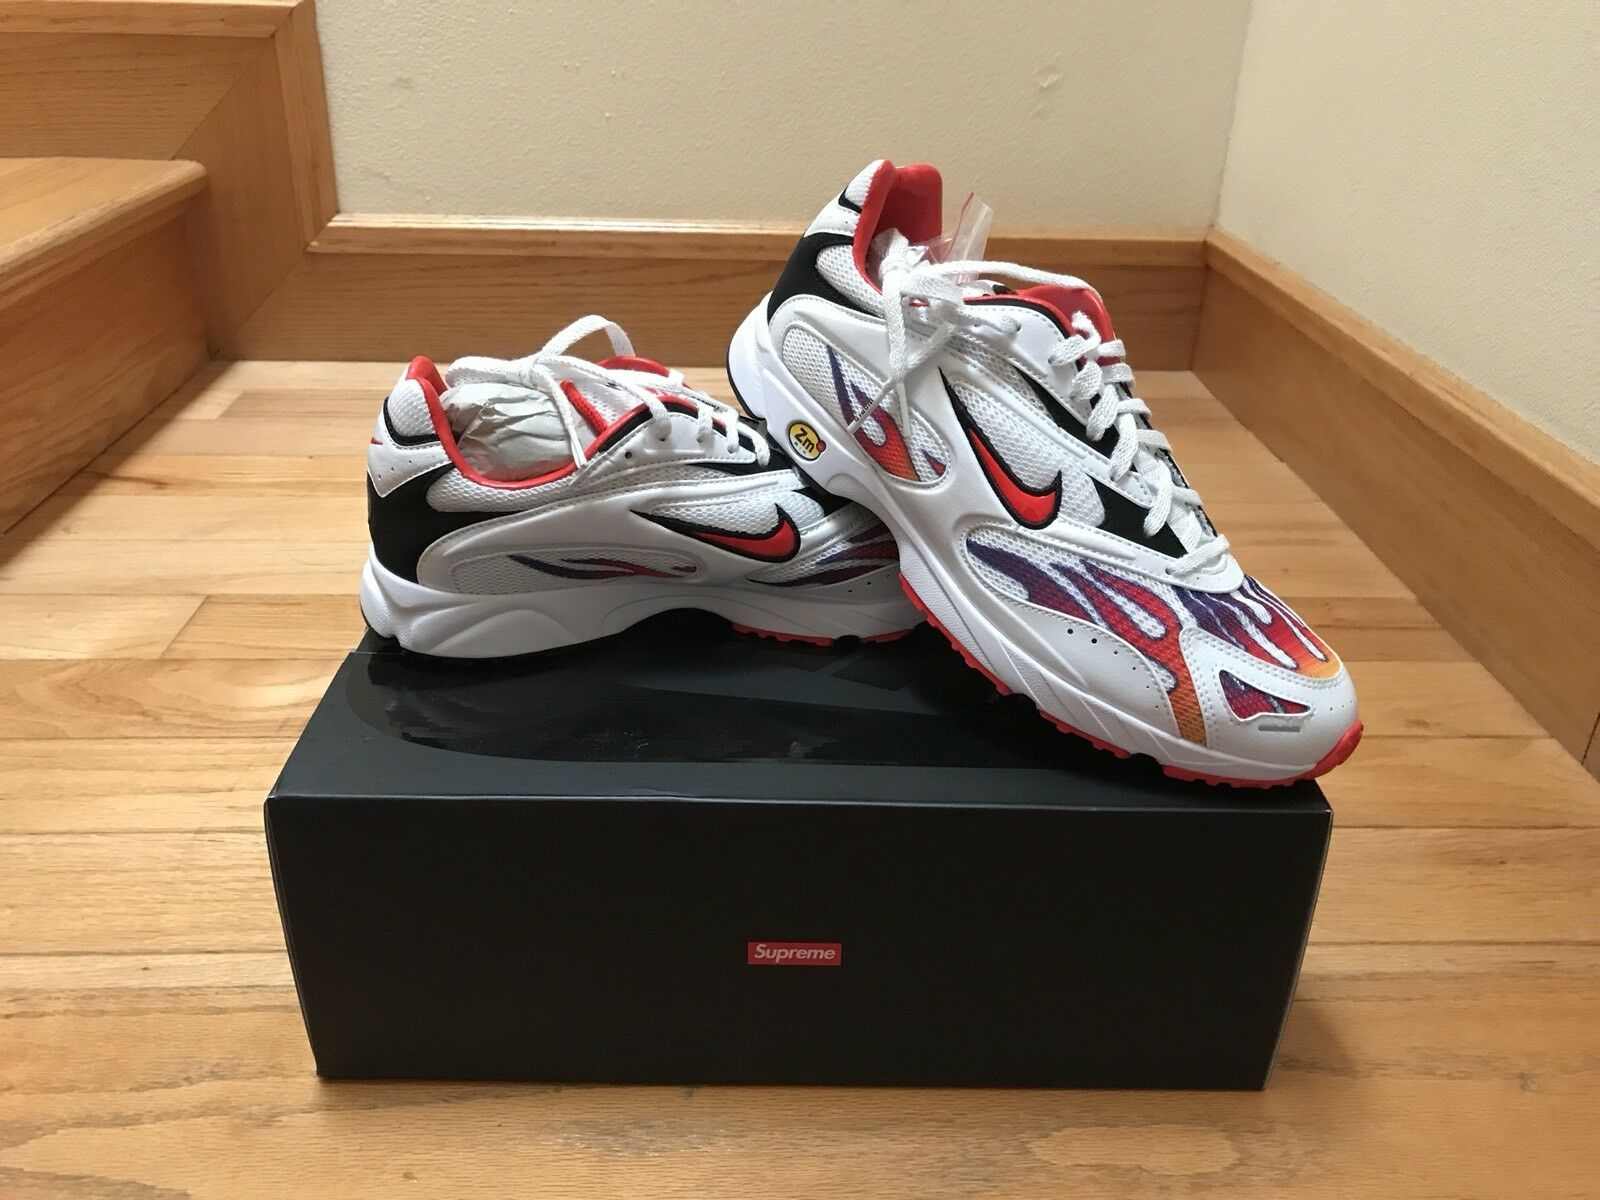 Supreme x Nike Zoom Streak Spectrum Plus White AQ1279-100 Size 9.5